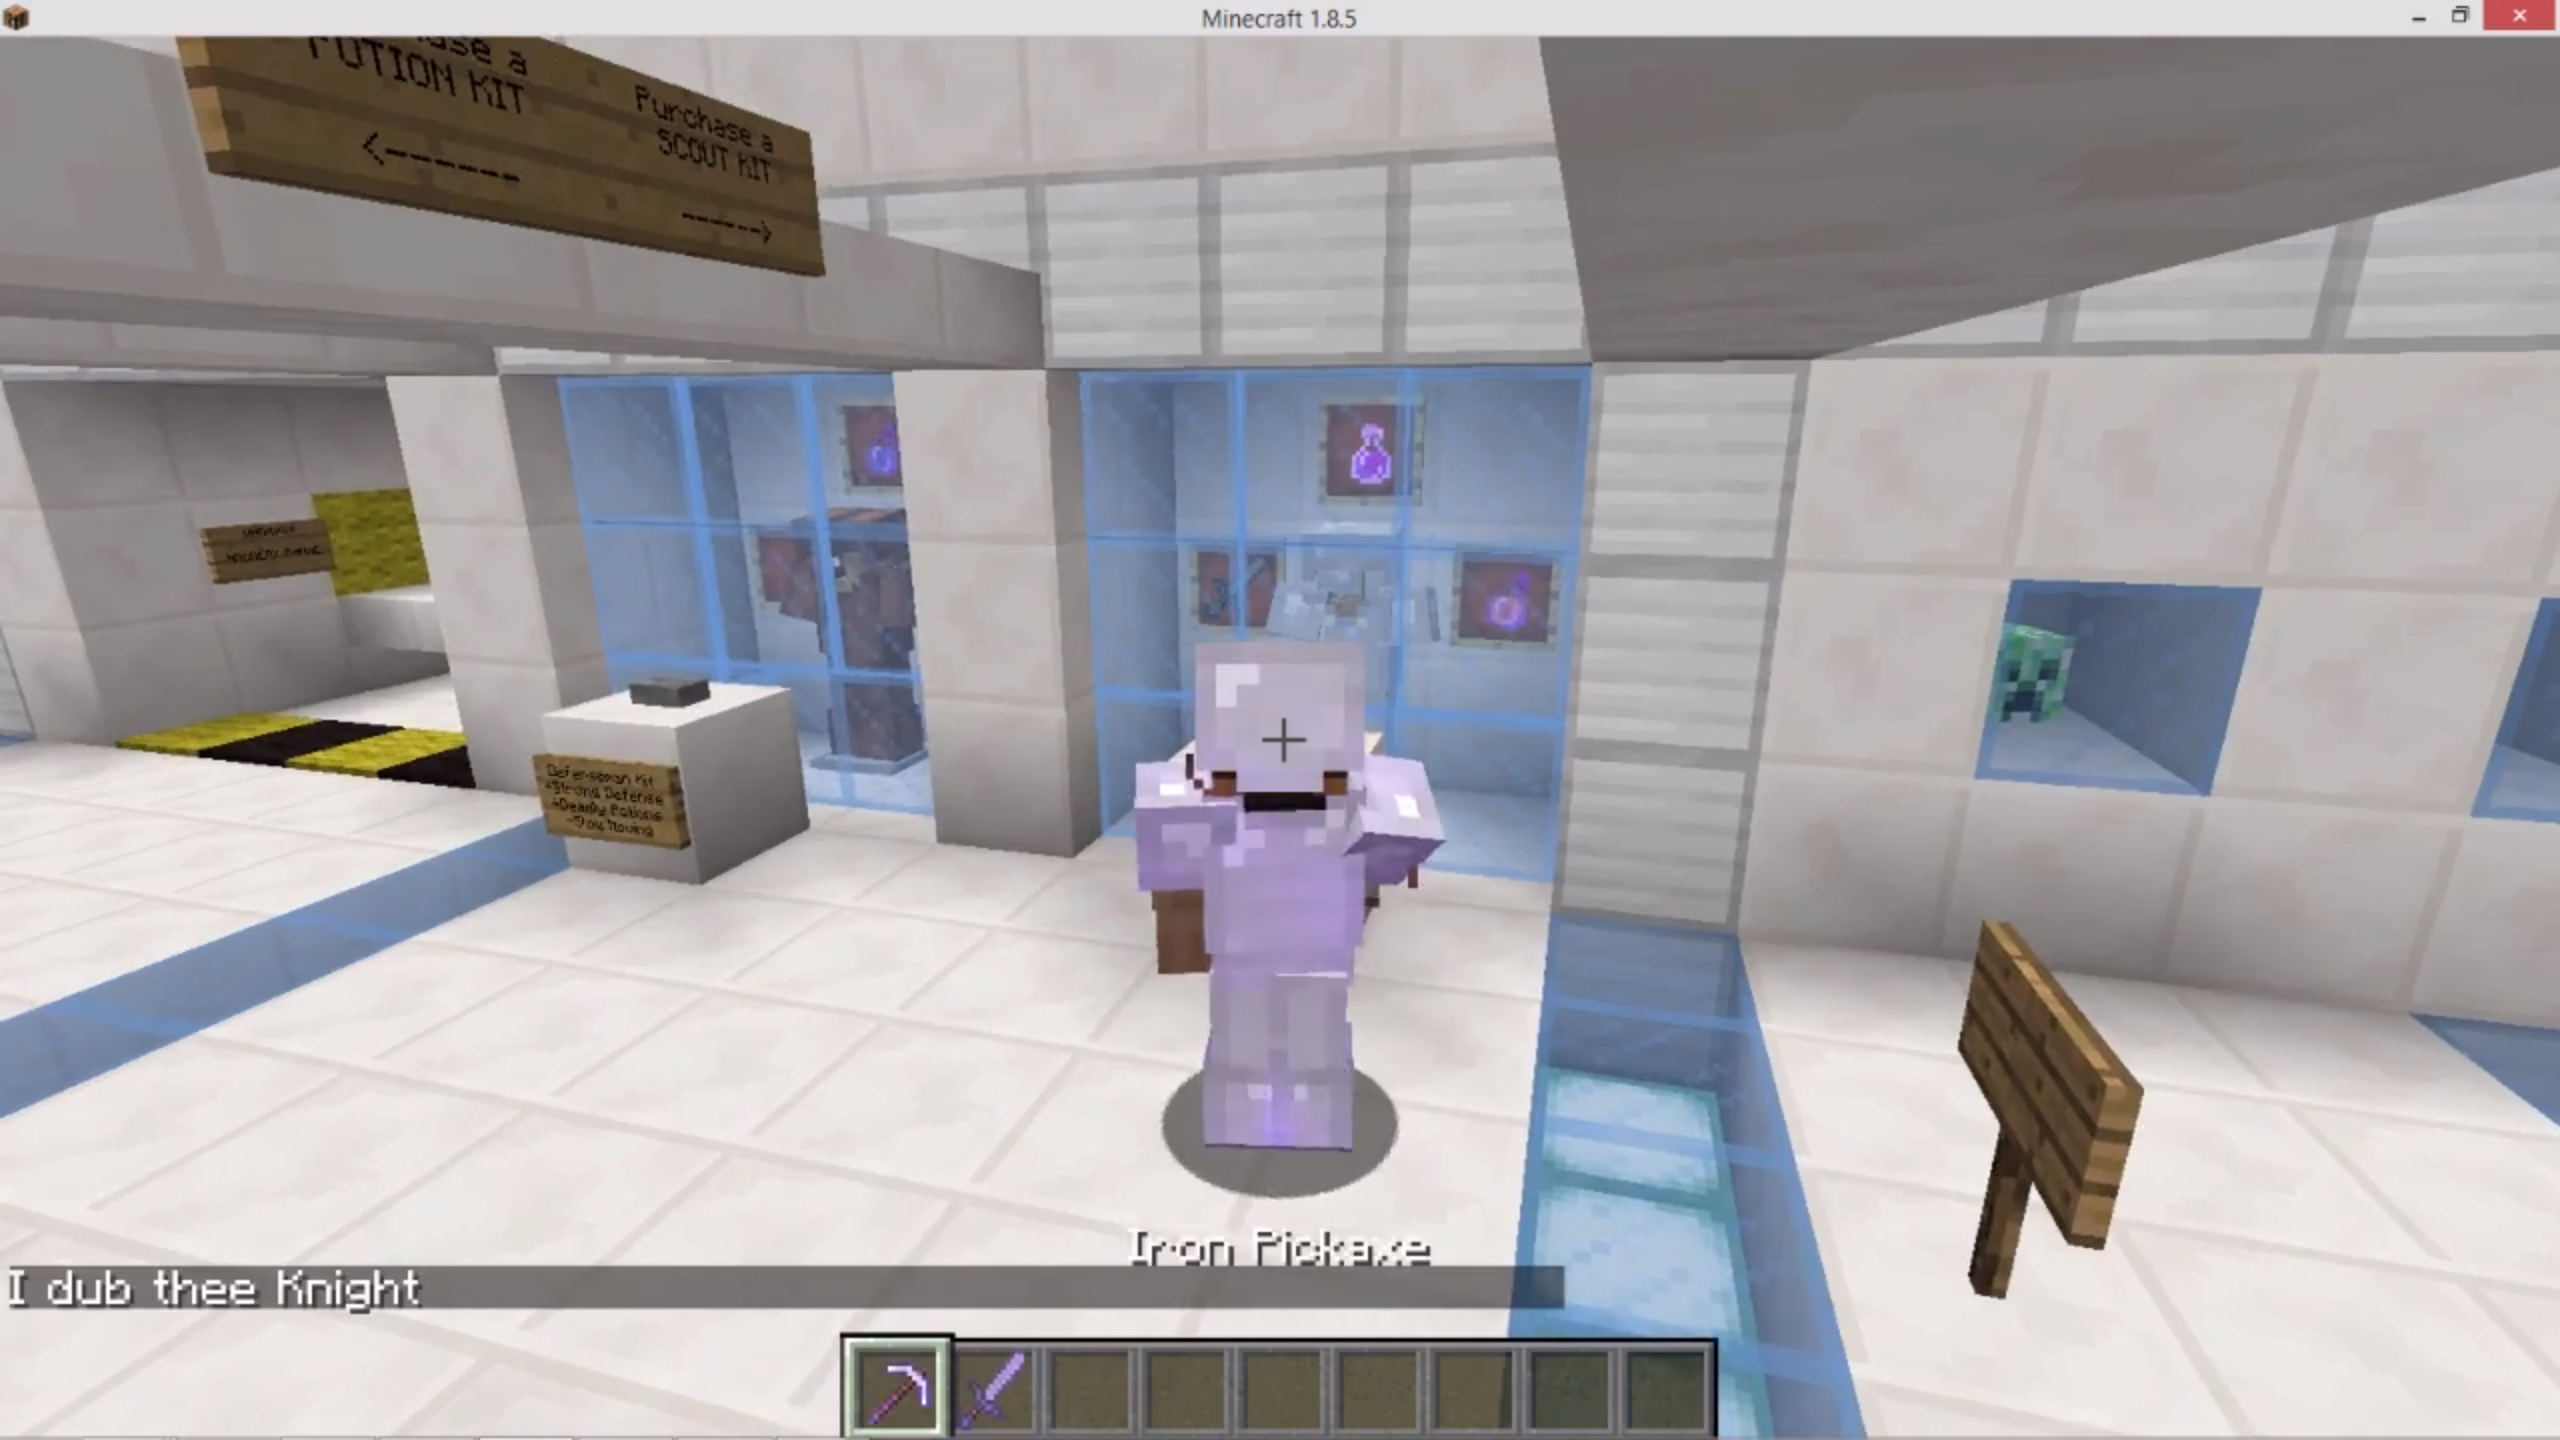 An Online Java Course For Kids Taught Via Minecraft Boing Boing